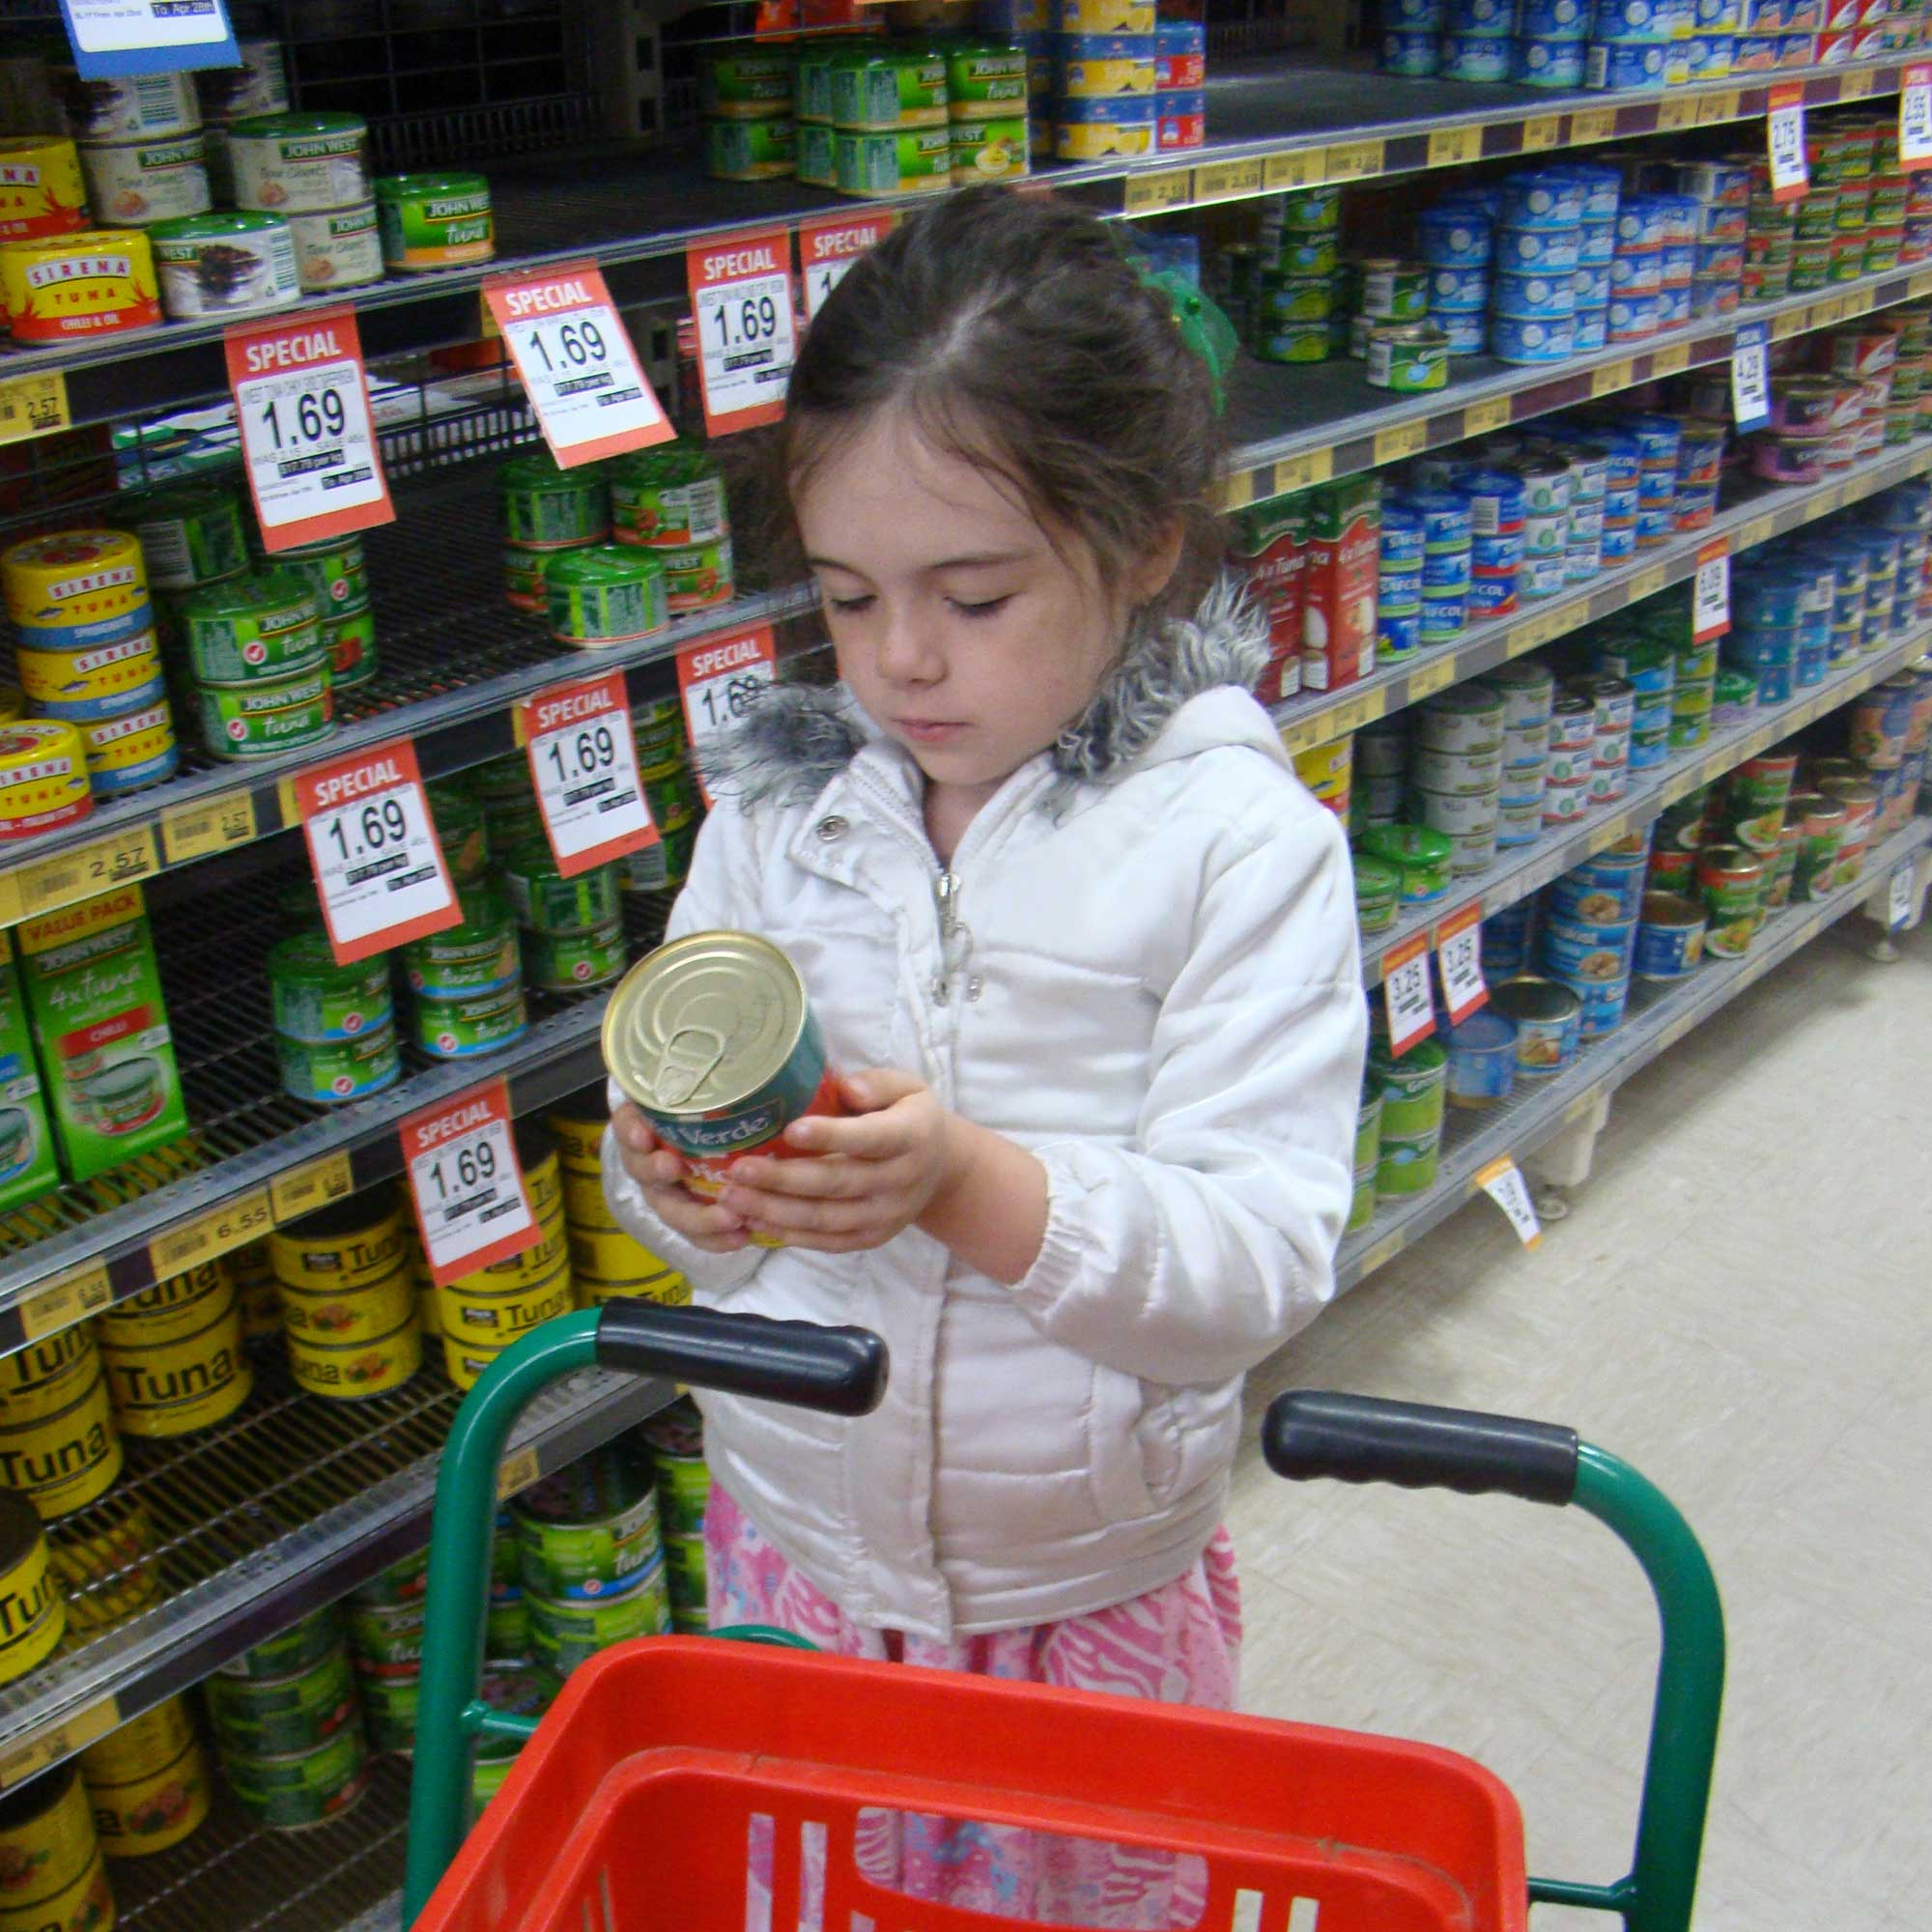 Tookii things to do with kids shopping one of the activities for kids